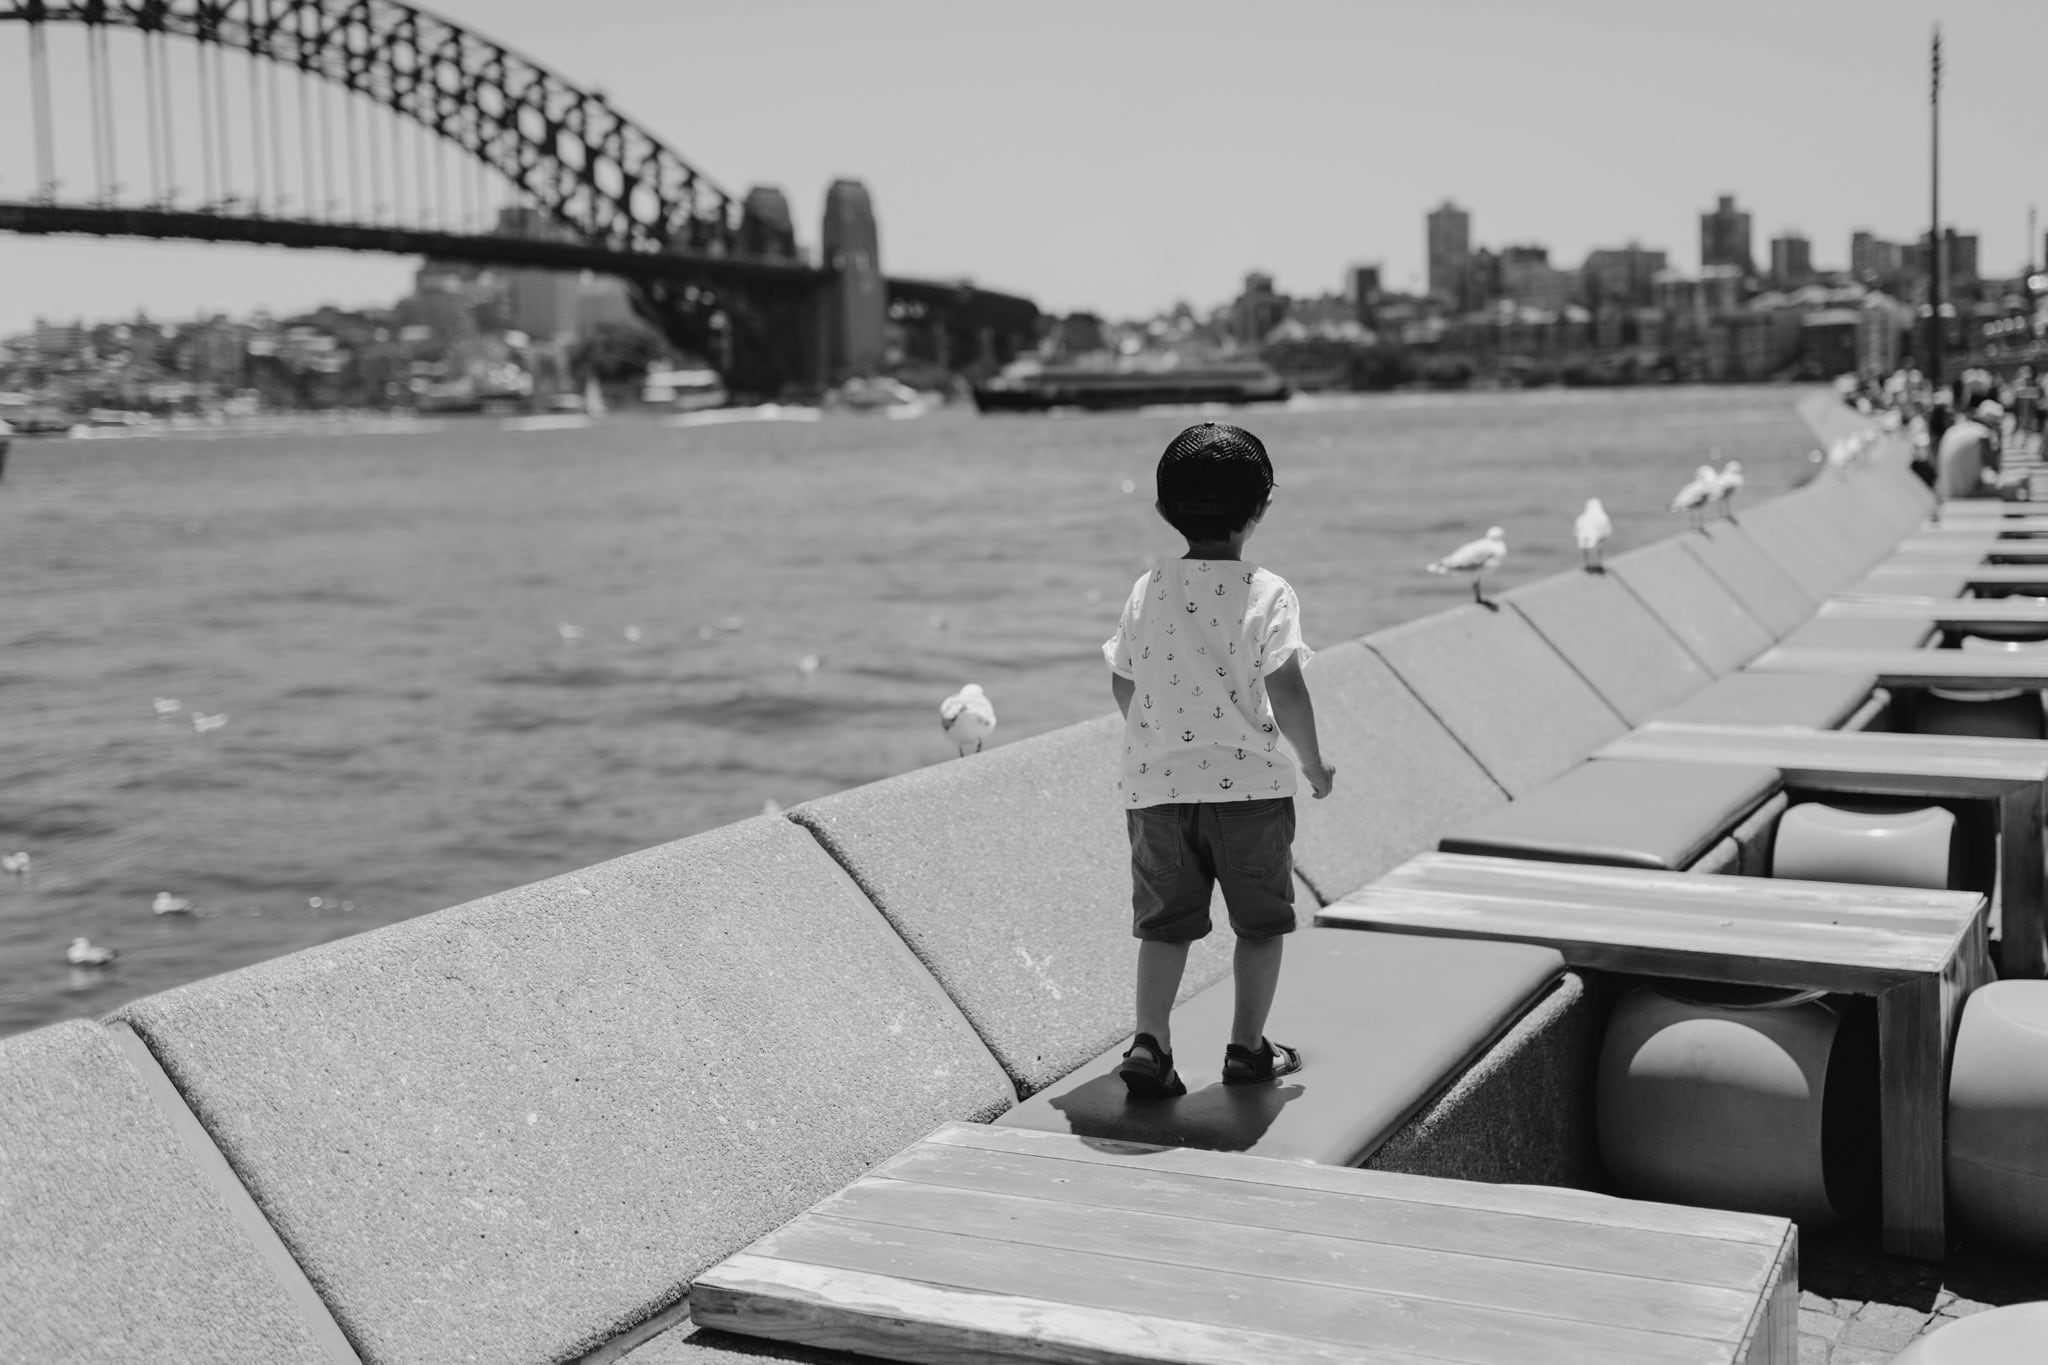 Black and white photo of young boy and seagulls on Sydney Harbour